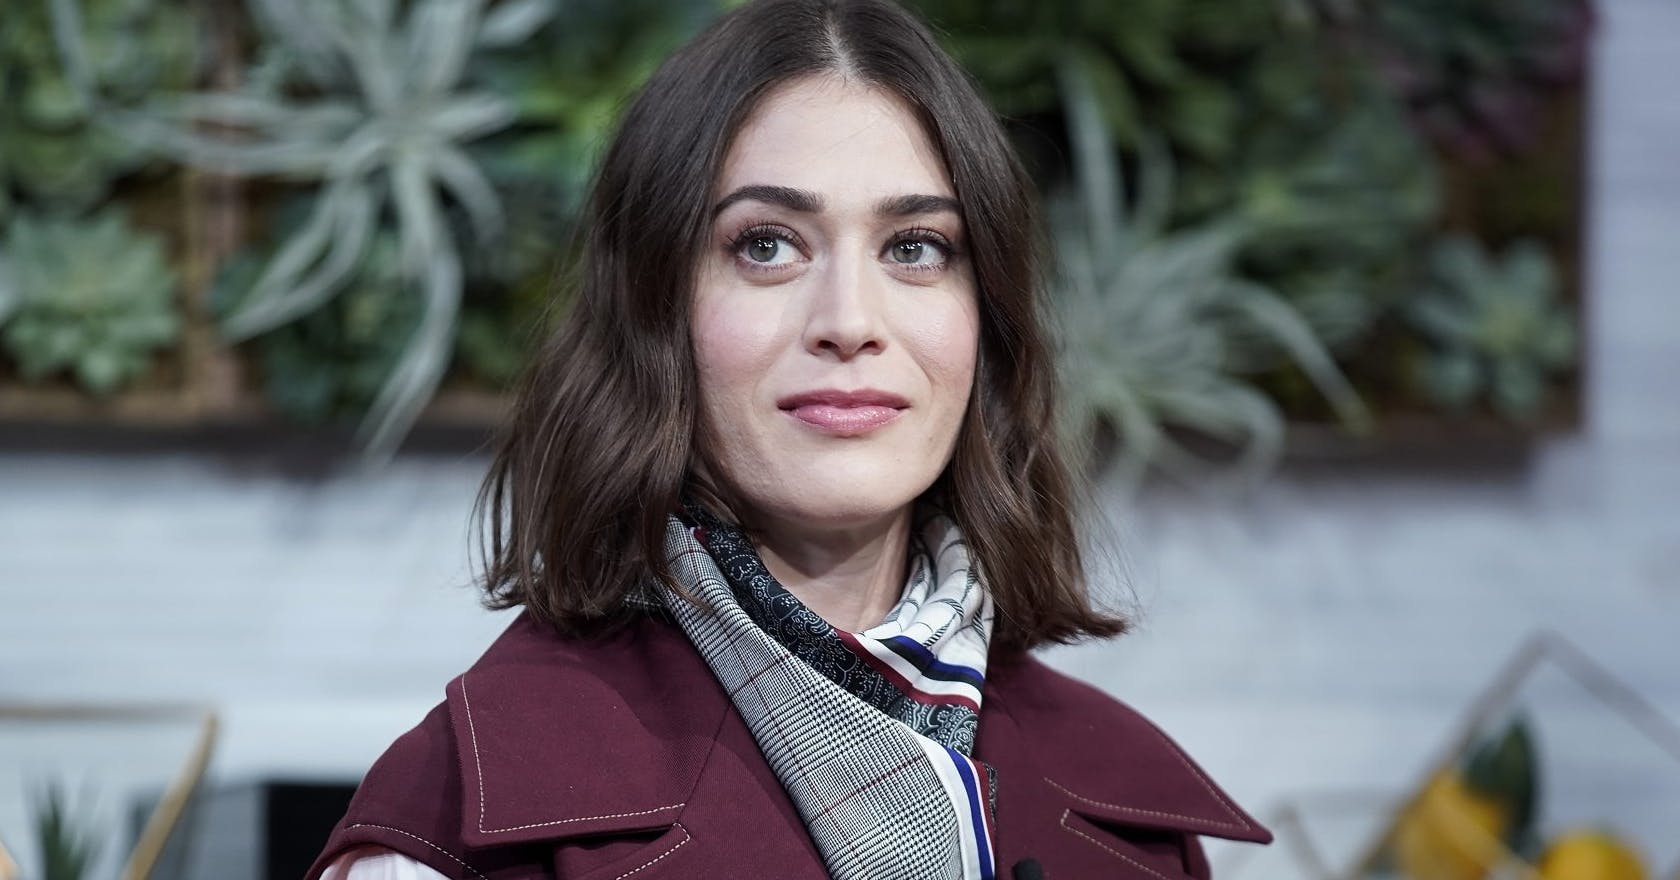 Lizzy Caplan had to bleach her hair after Mean Girls for this infuriating reason